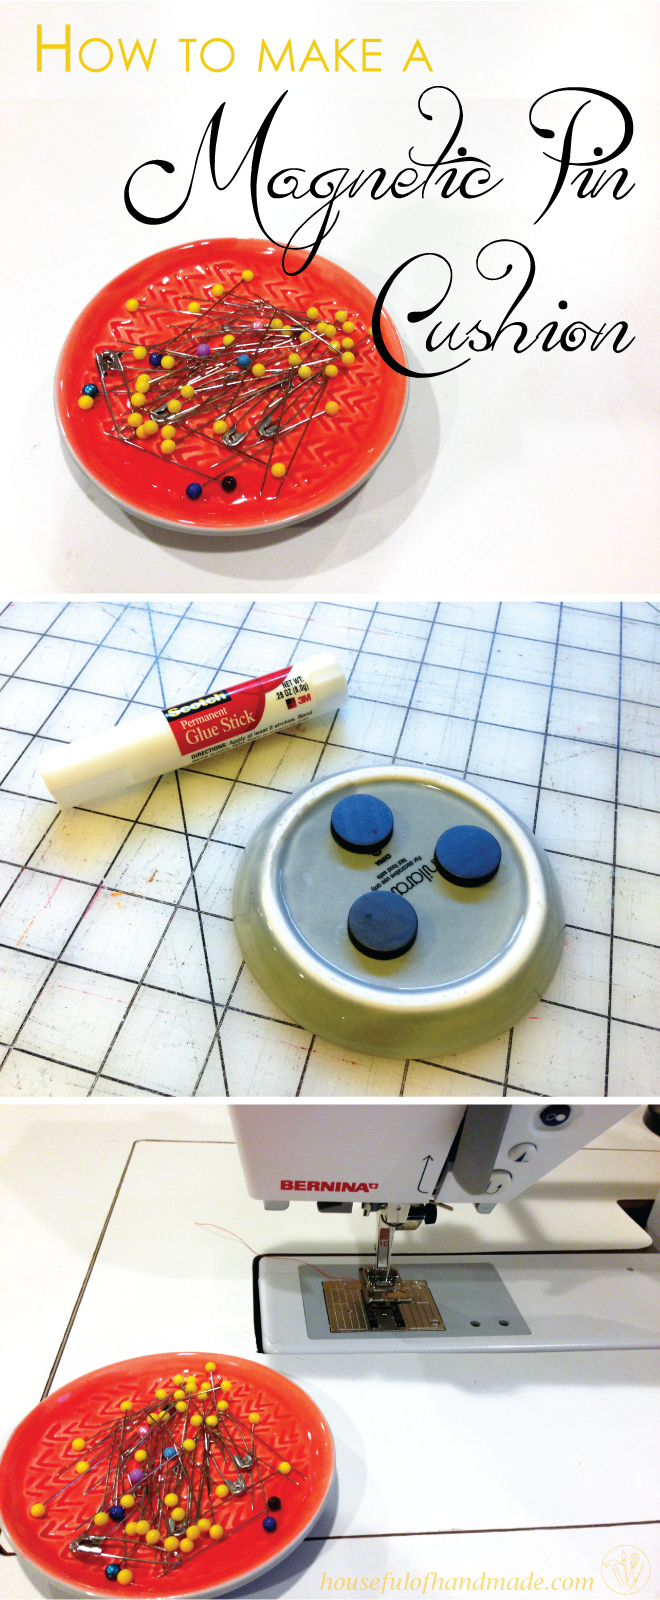 How to Make a Magnetic Pin Cushion | Nähen